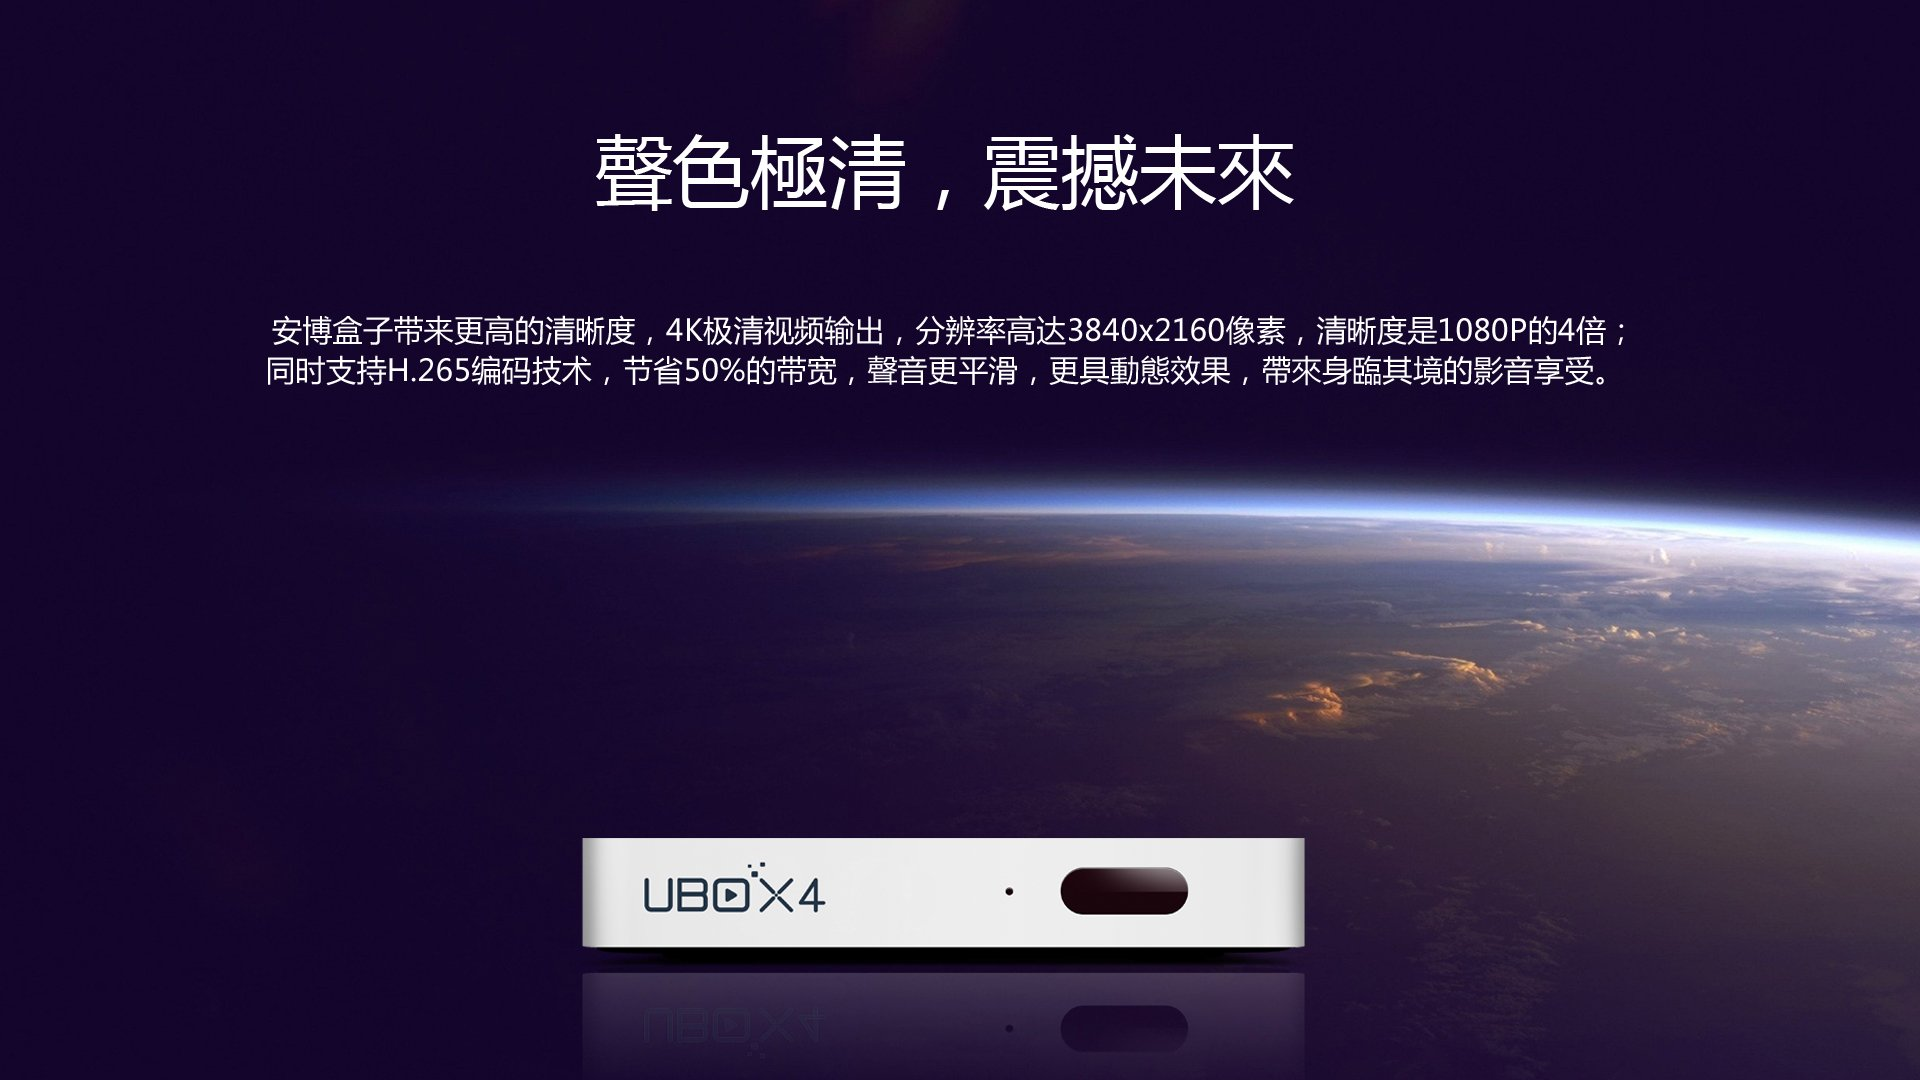 CHIHONG 2017 Latest Unblock Tech Gen4 S900 TV Box ProBT-16GB Bluetooth Ubox TV Streaming Media TV Box Player,China,Asia,Hongkong,Taiwan,Global TV Channels,Adults Channels by UNBLOCK TECH (Image #3)